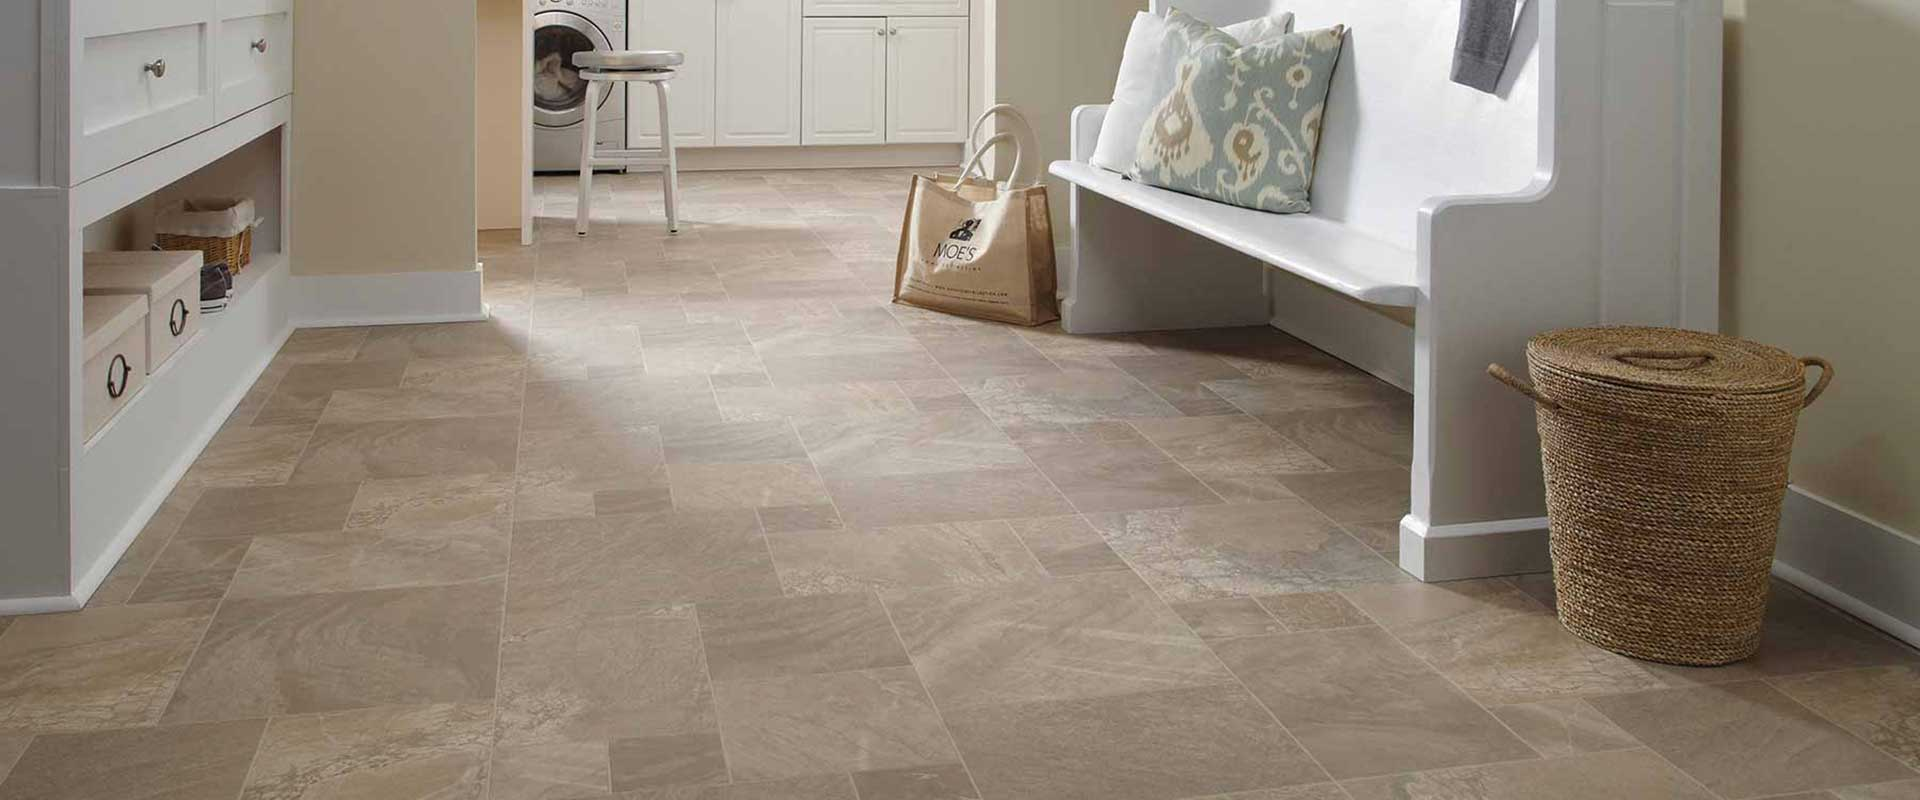 Vinyl Flooring Worcester Vinyl Flooring Showroom That